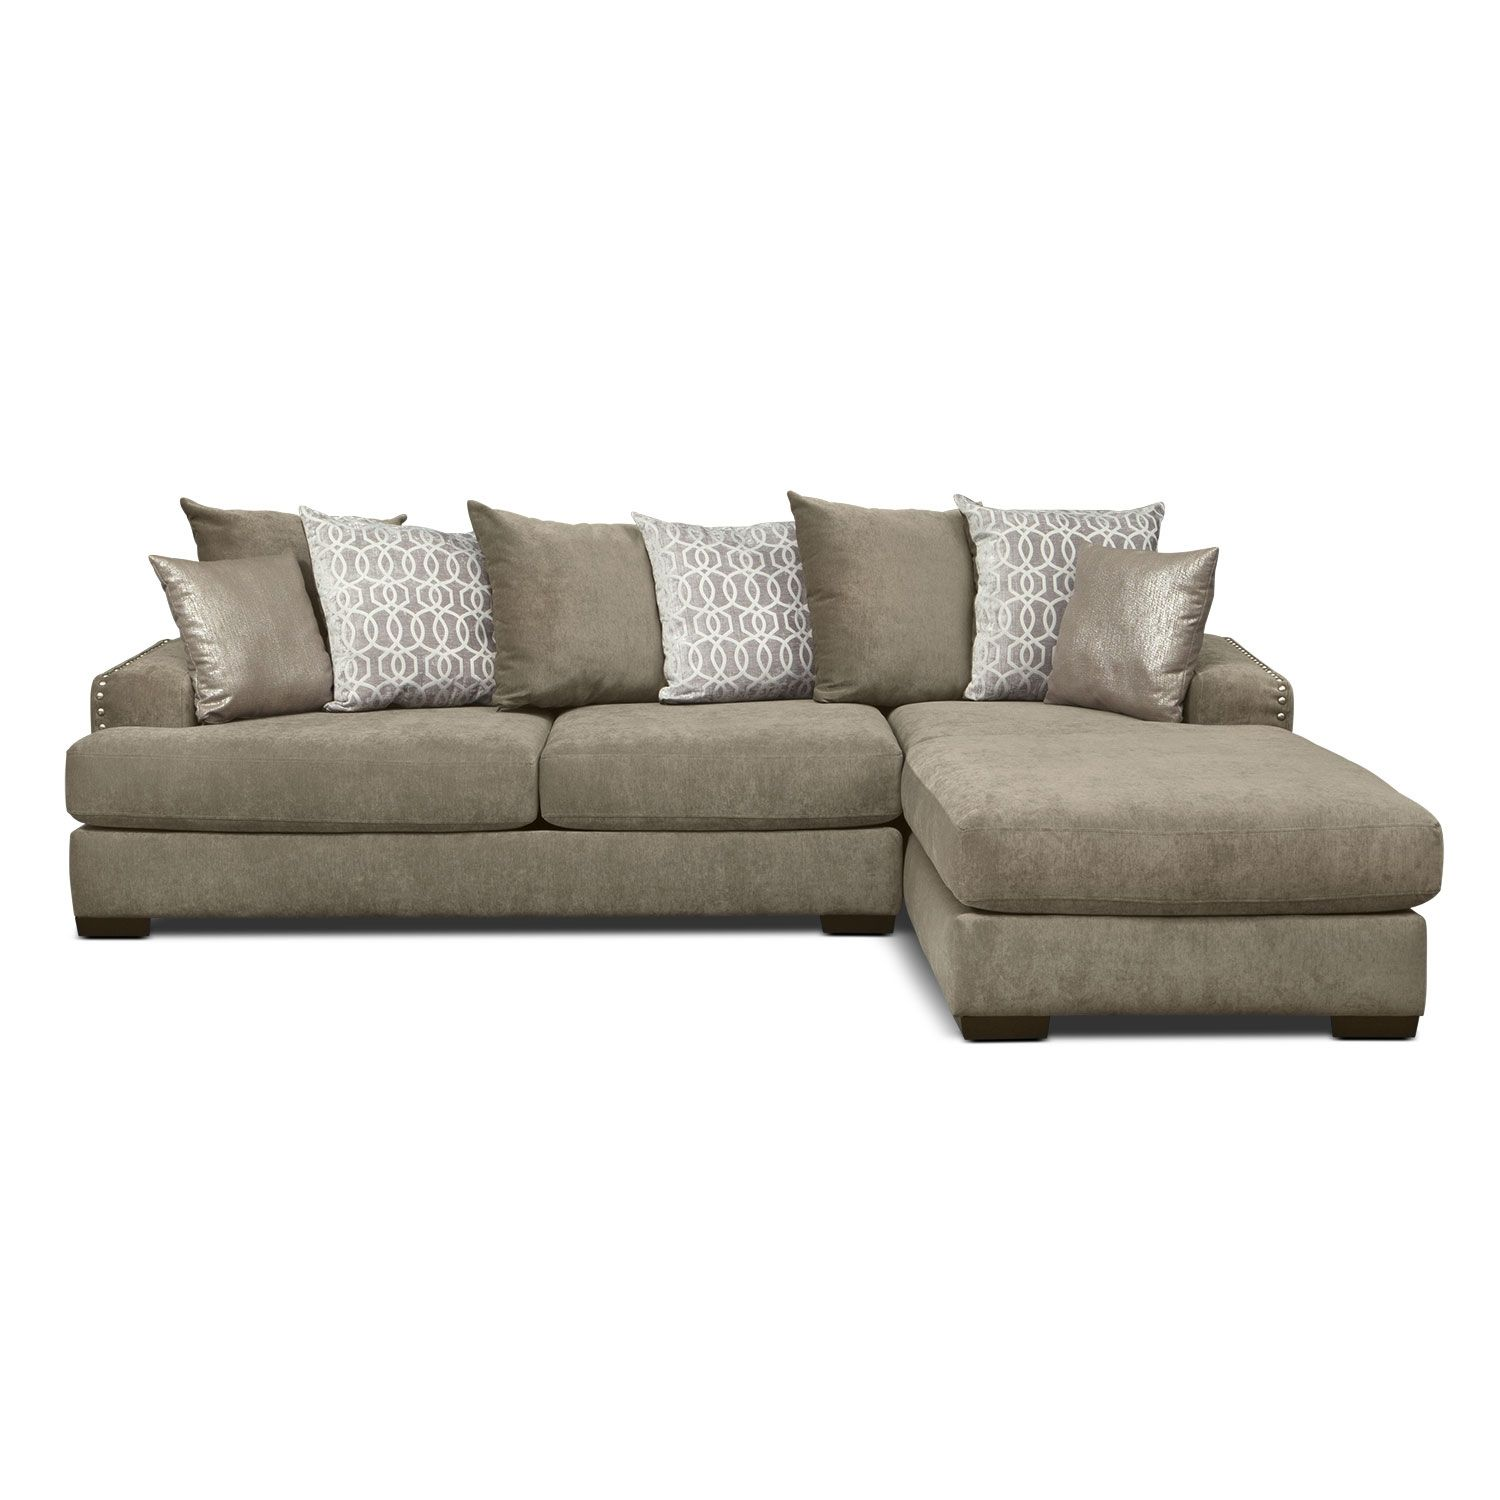 1000 Tempo 2 Pc Sectional With Right Facing Chaise Value City Furniture Grey Sectional Sofa Sectional Sleeper Sofa Sectional Sofa With Chaise